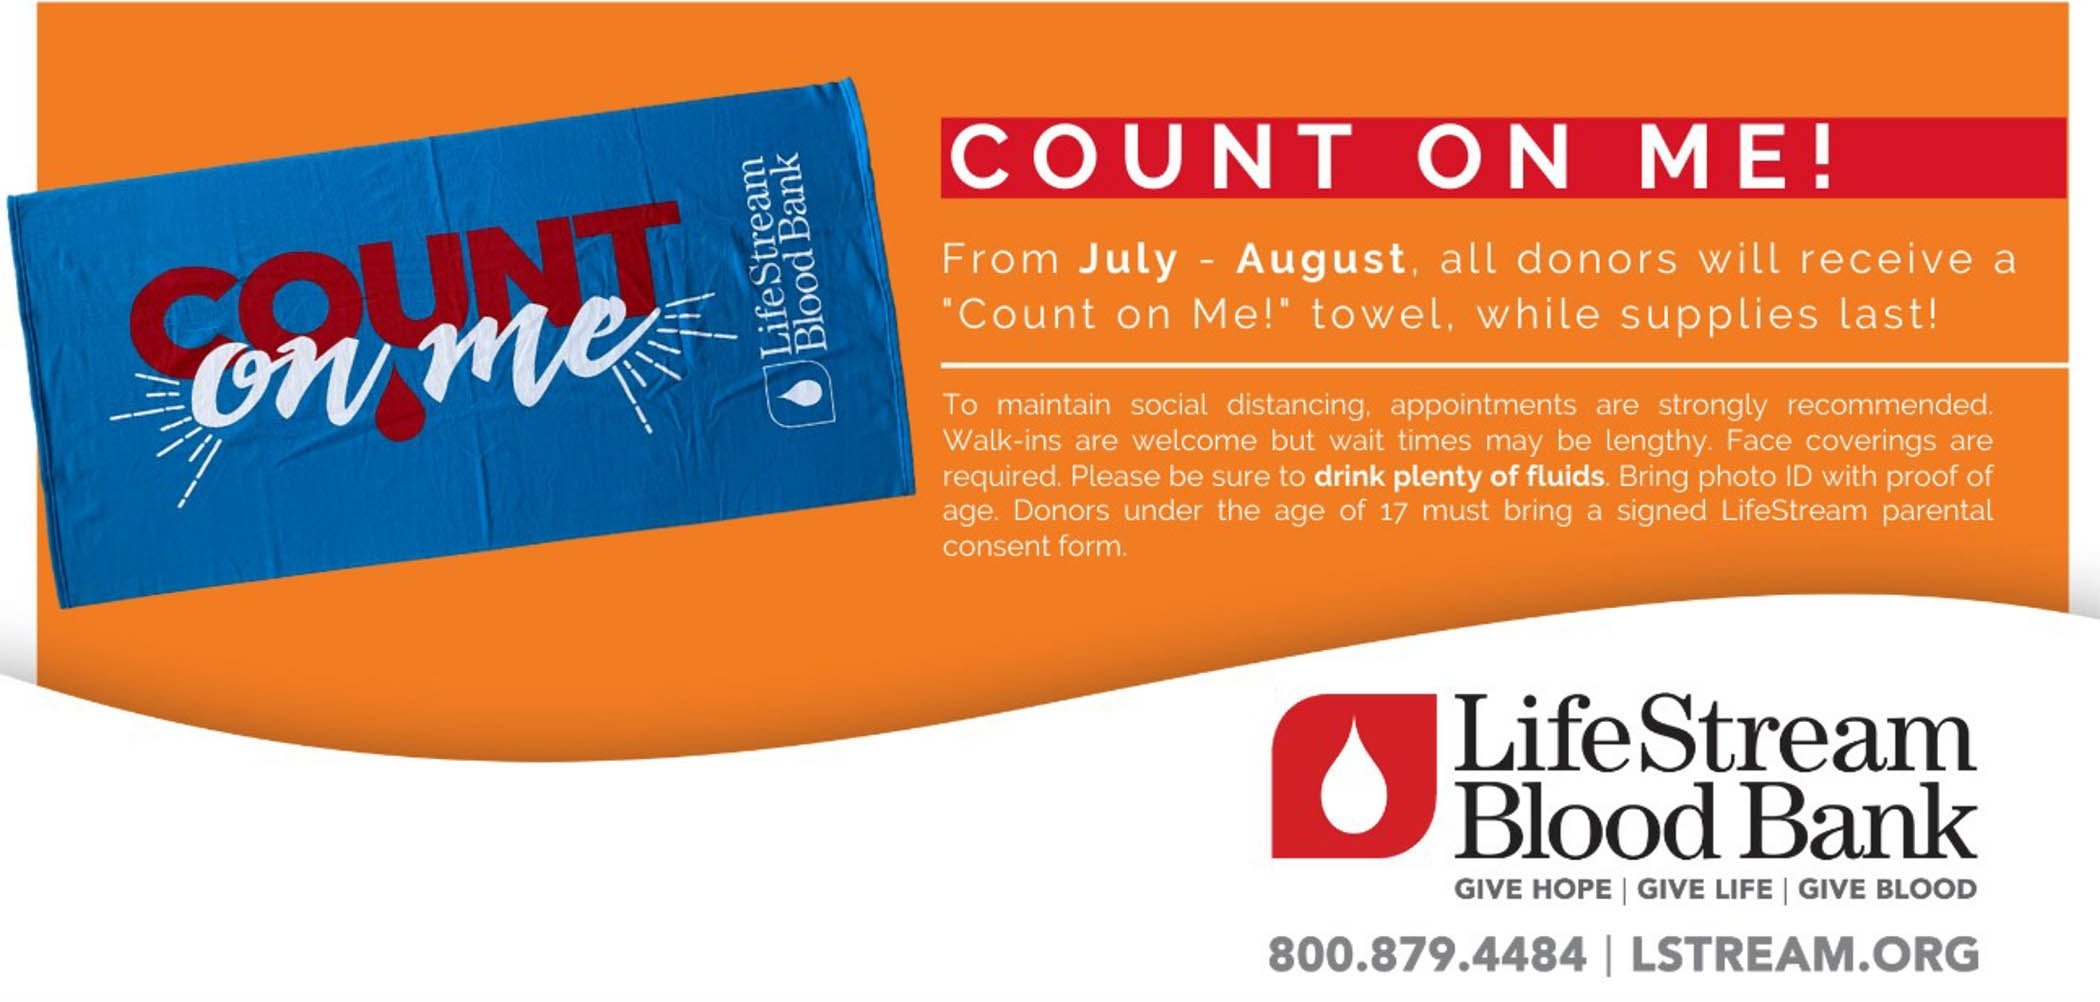 """From July - August, all donors will receive a """"Count on Me!"""" towel, while supplies last! Event organized by LifeStram Blood Bank"""